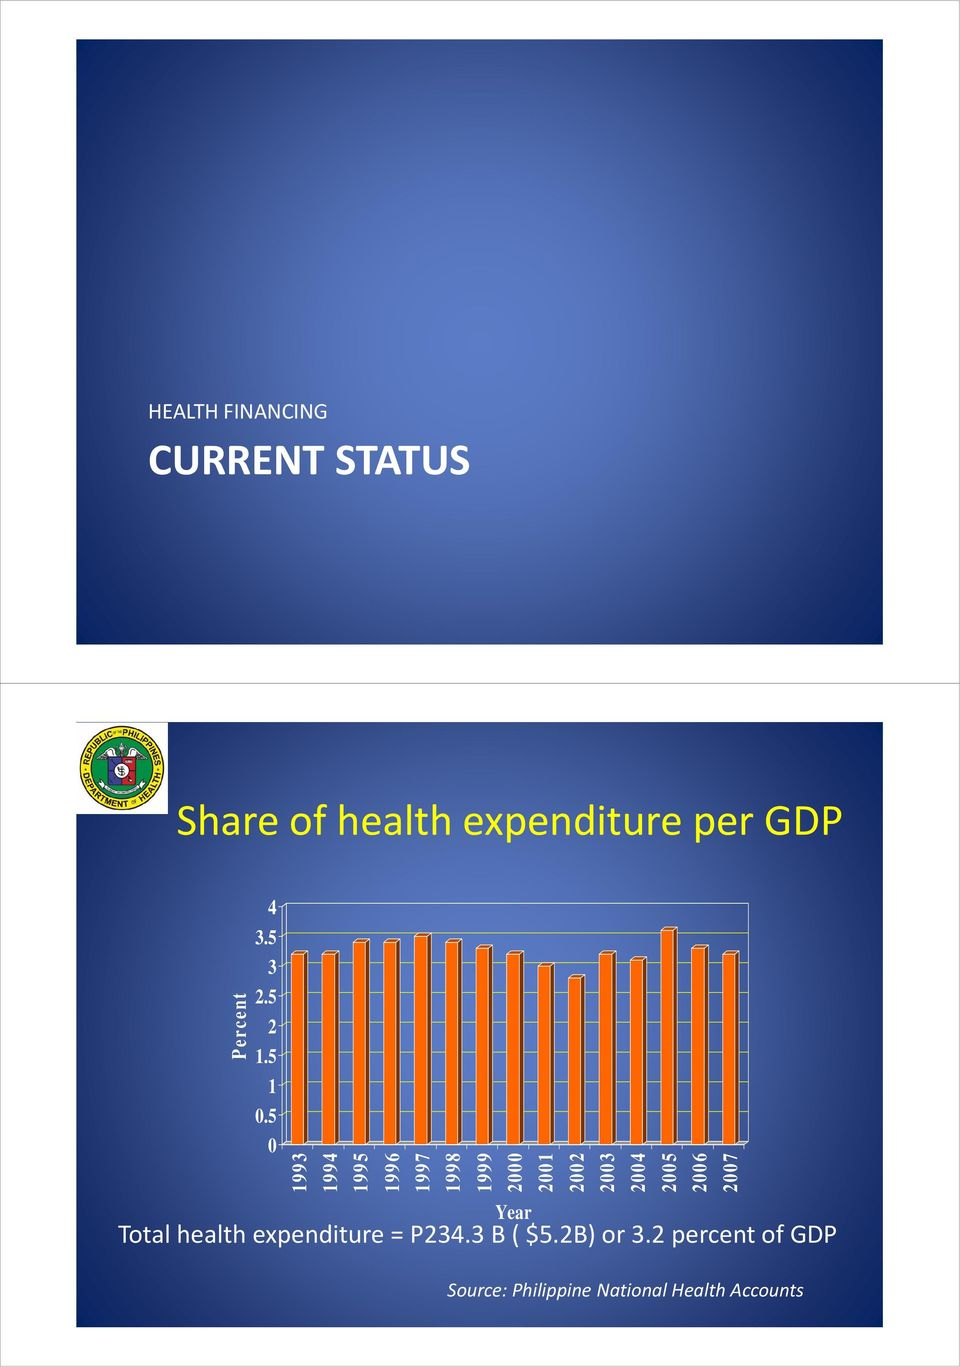 5 0 1993 1994 1995 1996 1997 1998 1999 Year Total health expenditure =